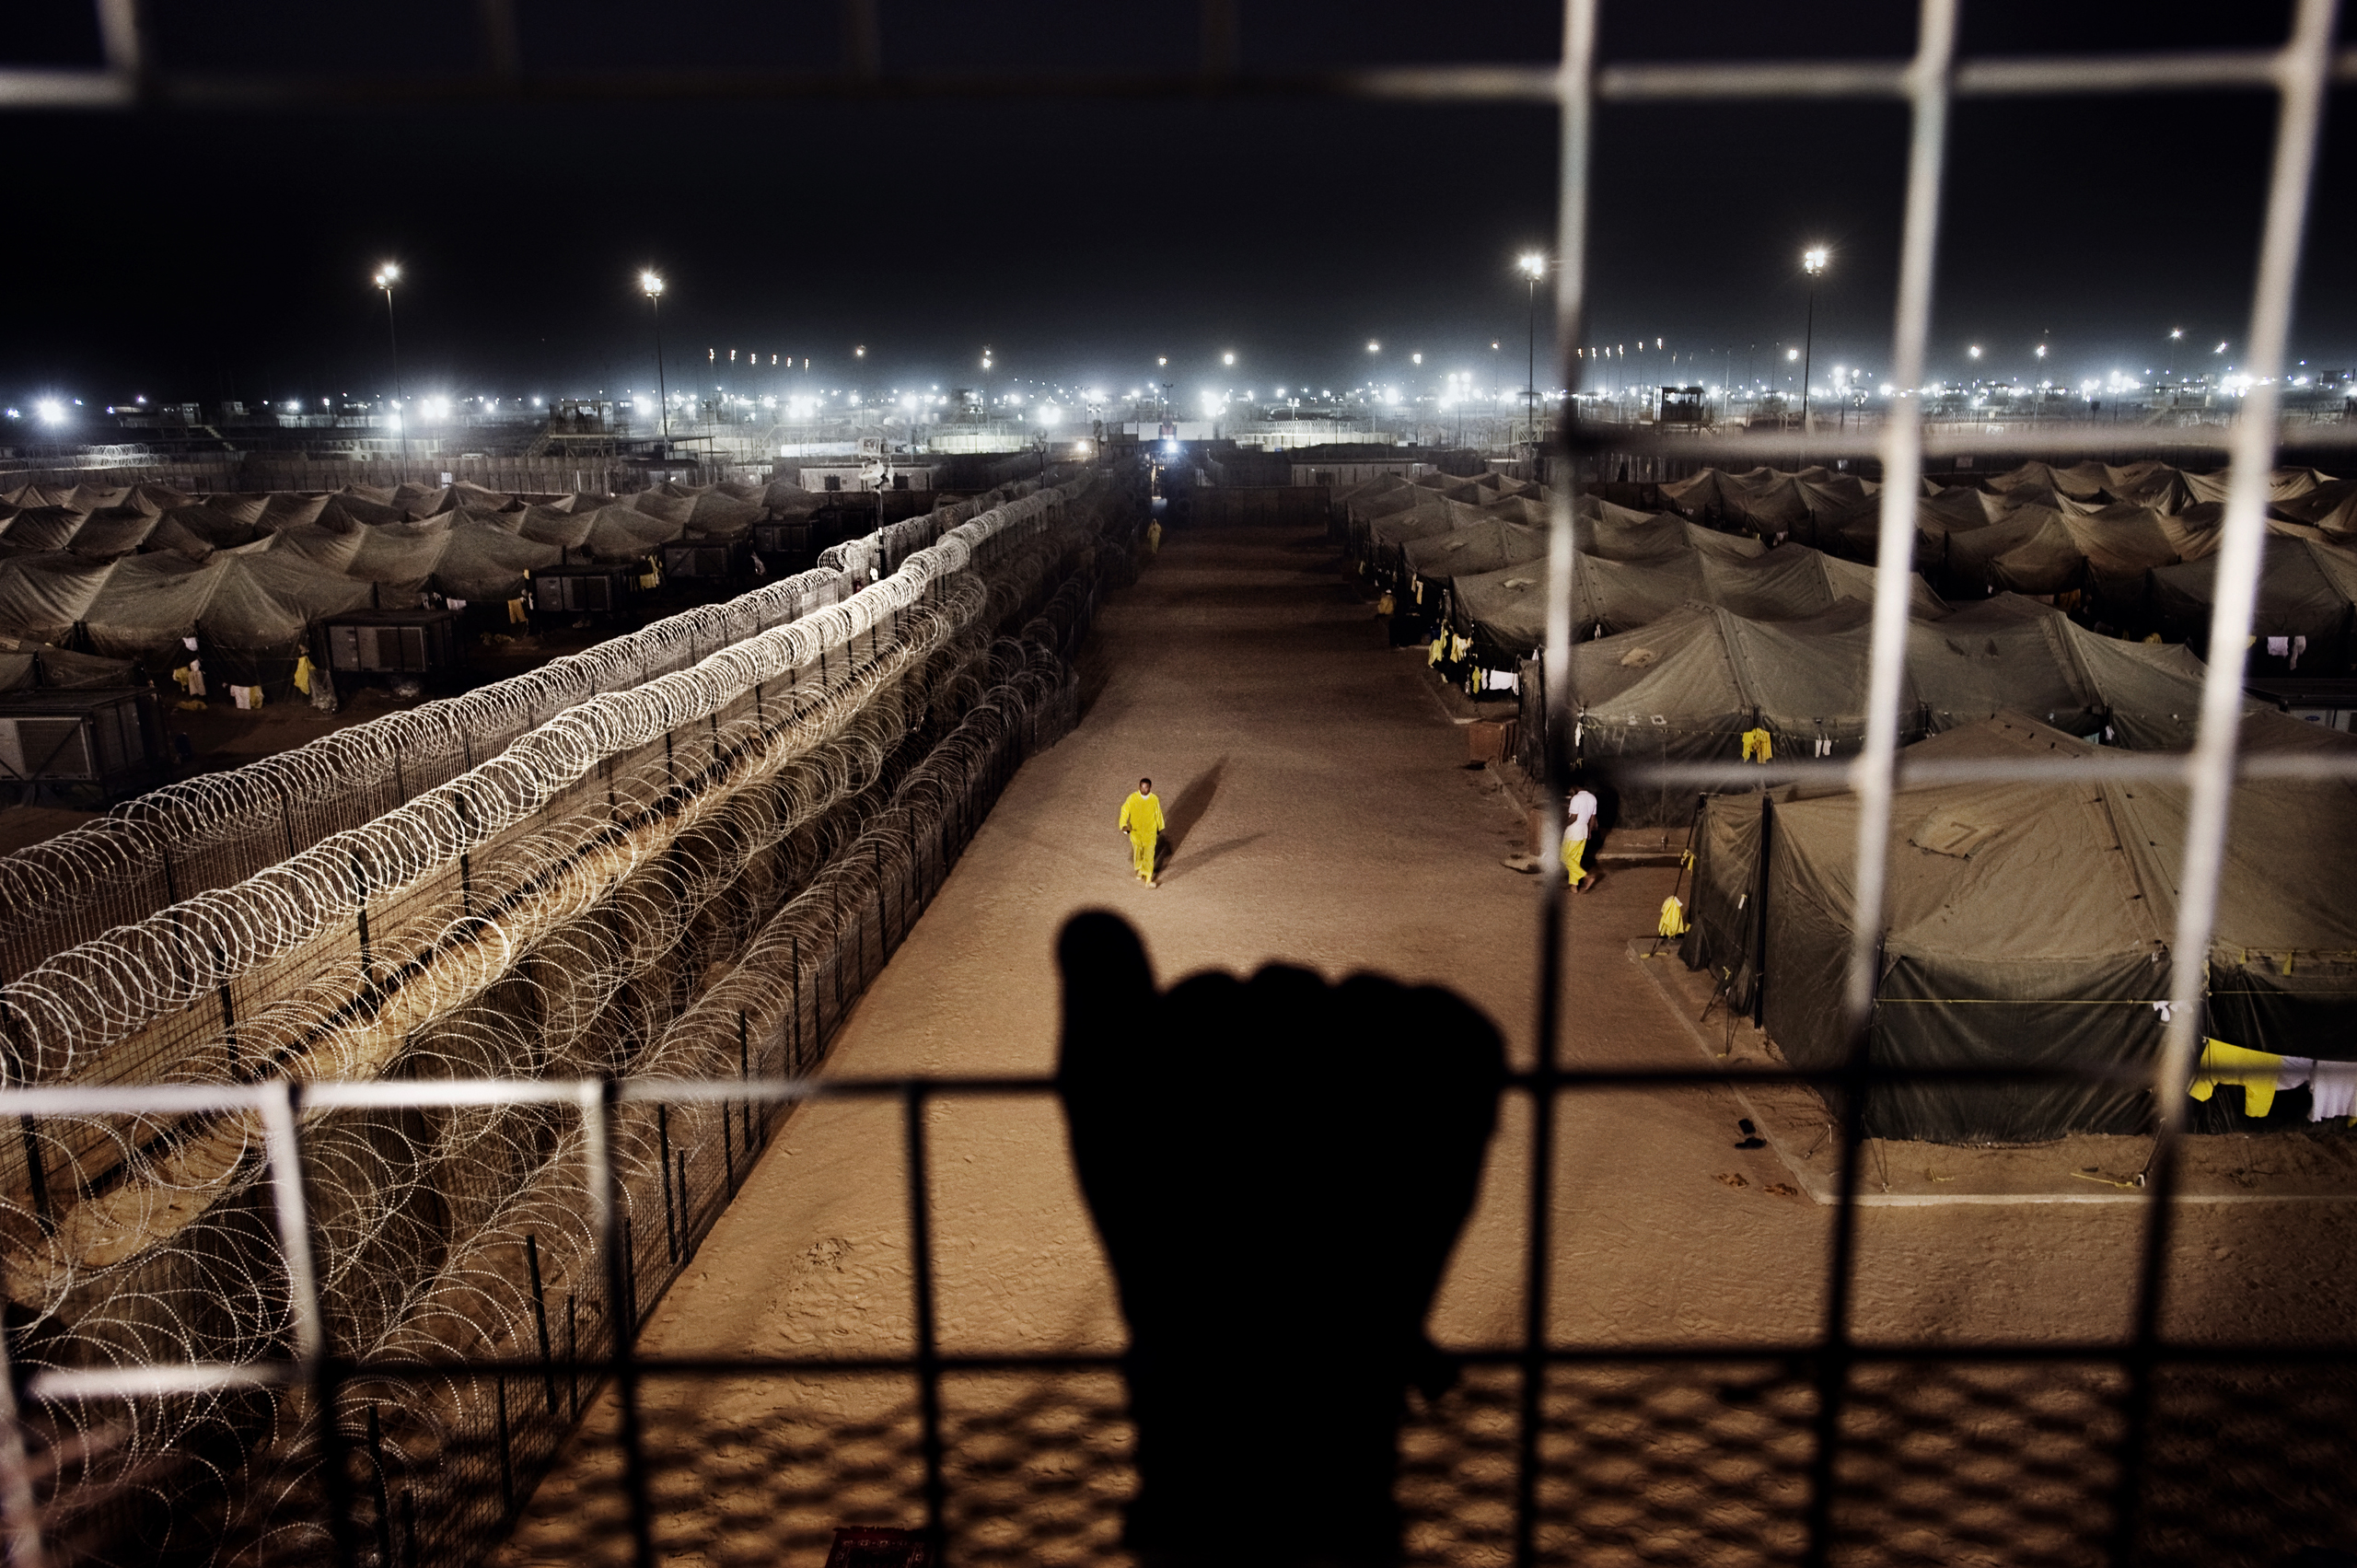 Camp Bucca, an American detention facility, March 16, 2009.